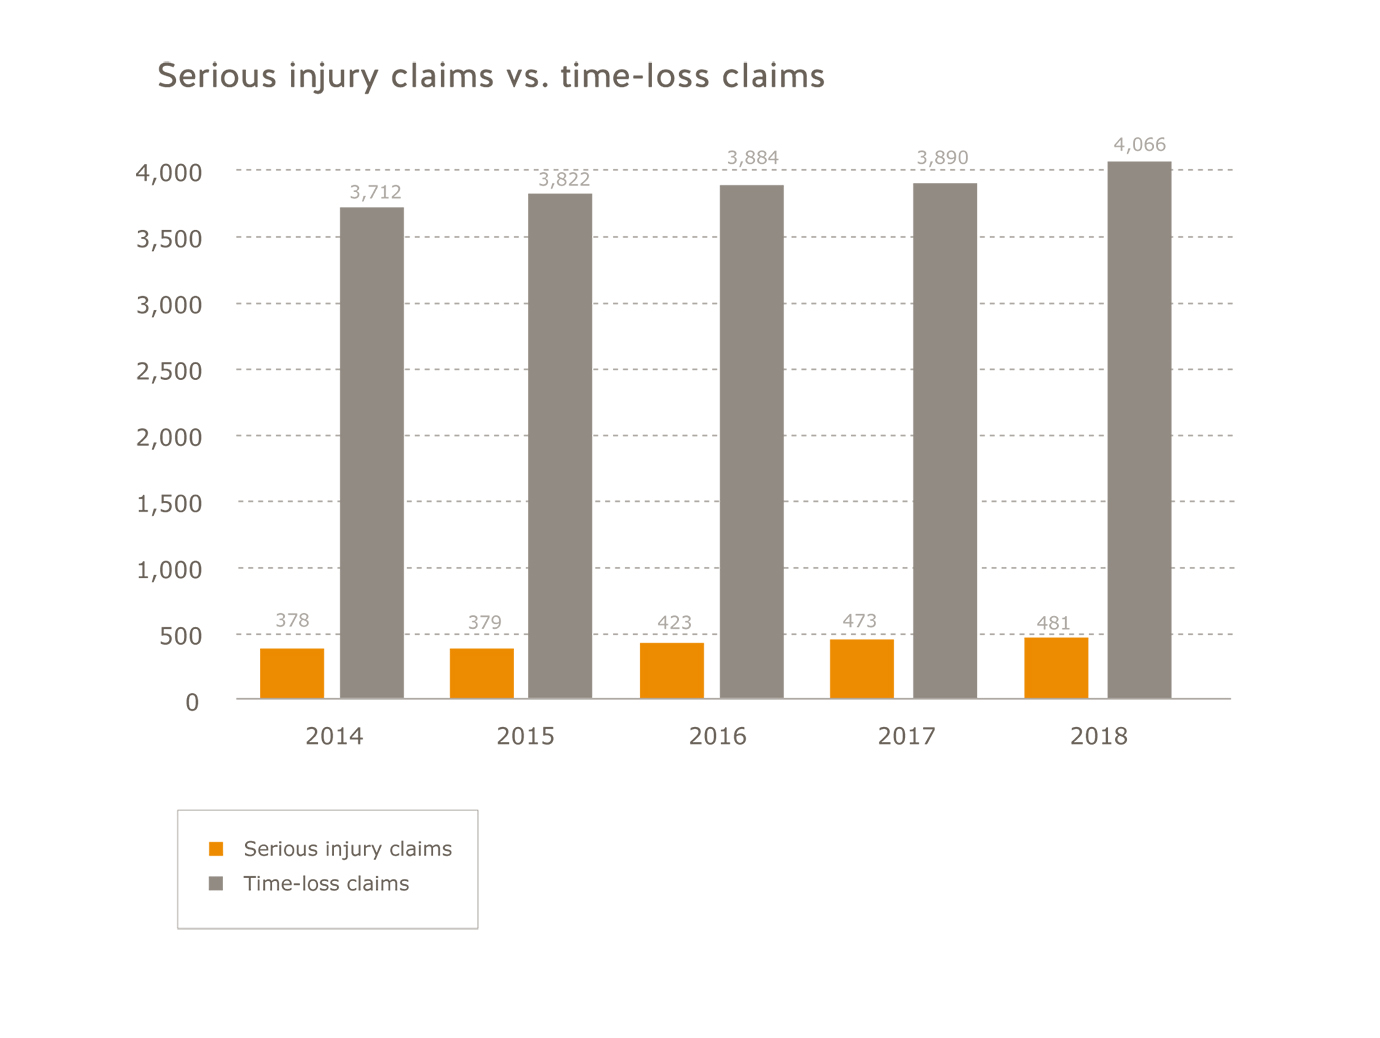 Tourism industry serious injury claims vs. time-loss claims for 2014 to 2018. Serious injury claims: 2014=378; 2015=279; 2016=423; 2017=473; 2018=481. Time-loss claims: 2014=3,712, 2015=3,822; 2016=3,884; 2017=3,890; 2017=4,066